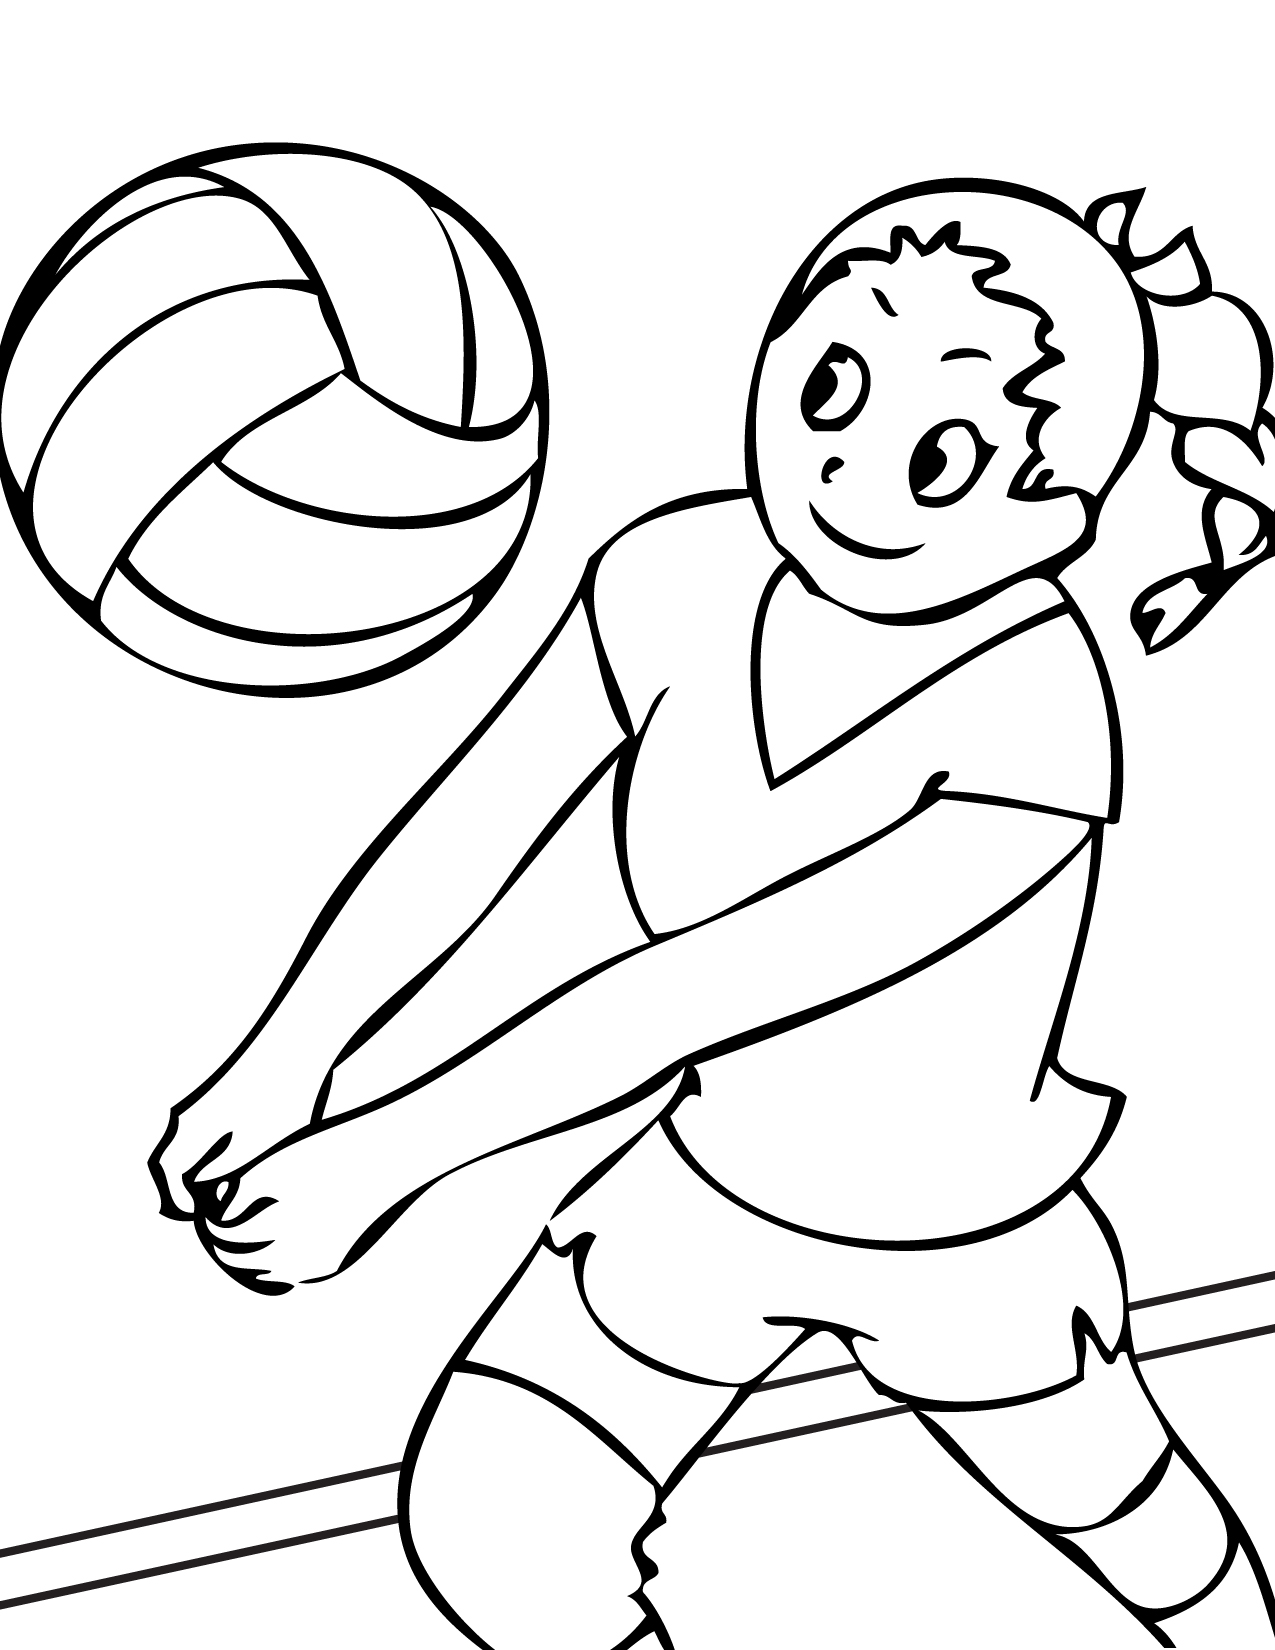 volleyball coloring pages printable free printable volleyball coloring pages for kids coloring volleyball printable pages